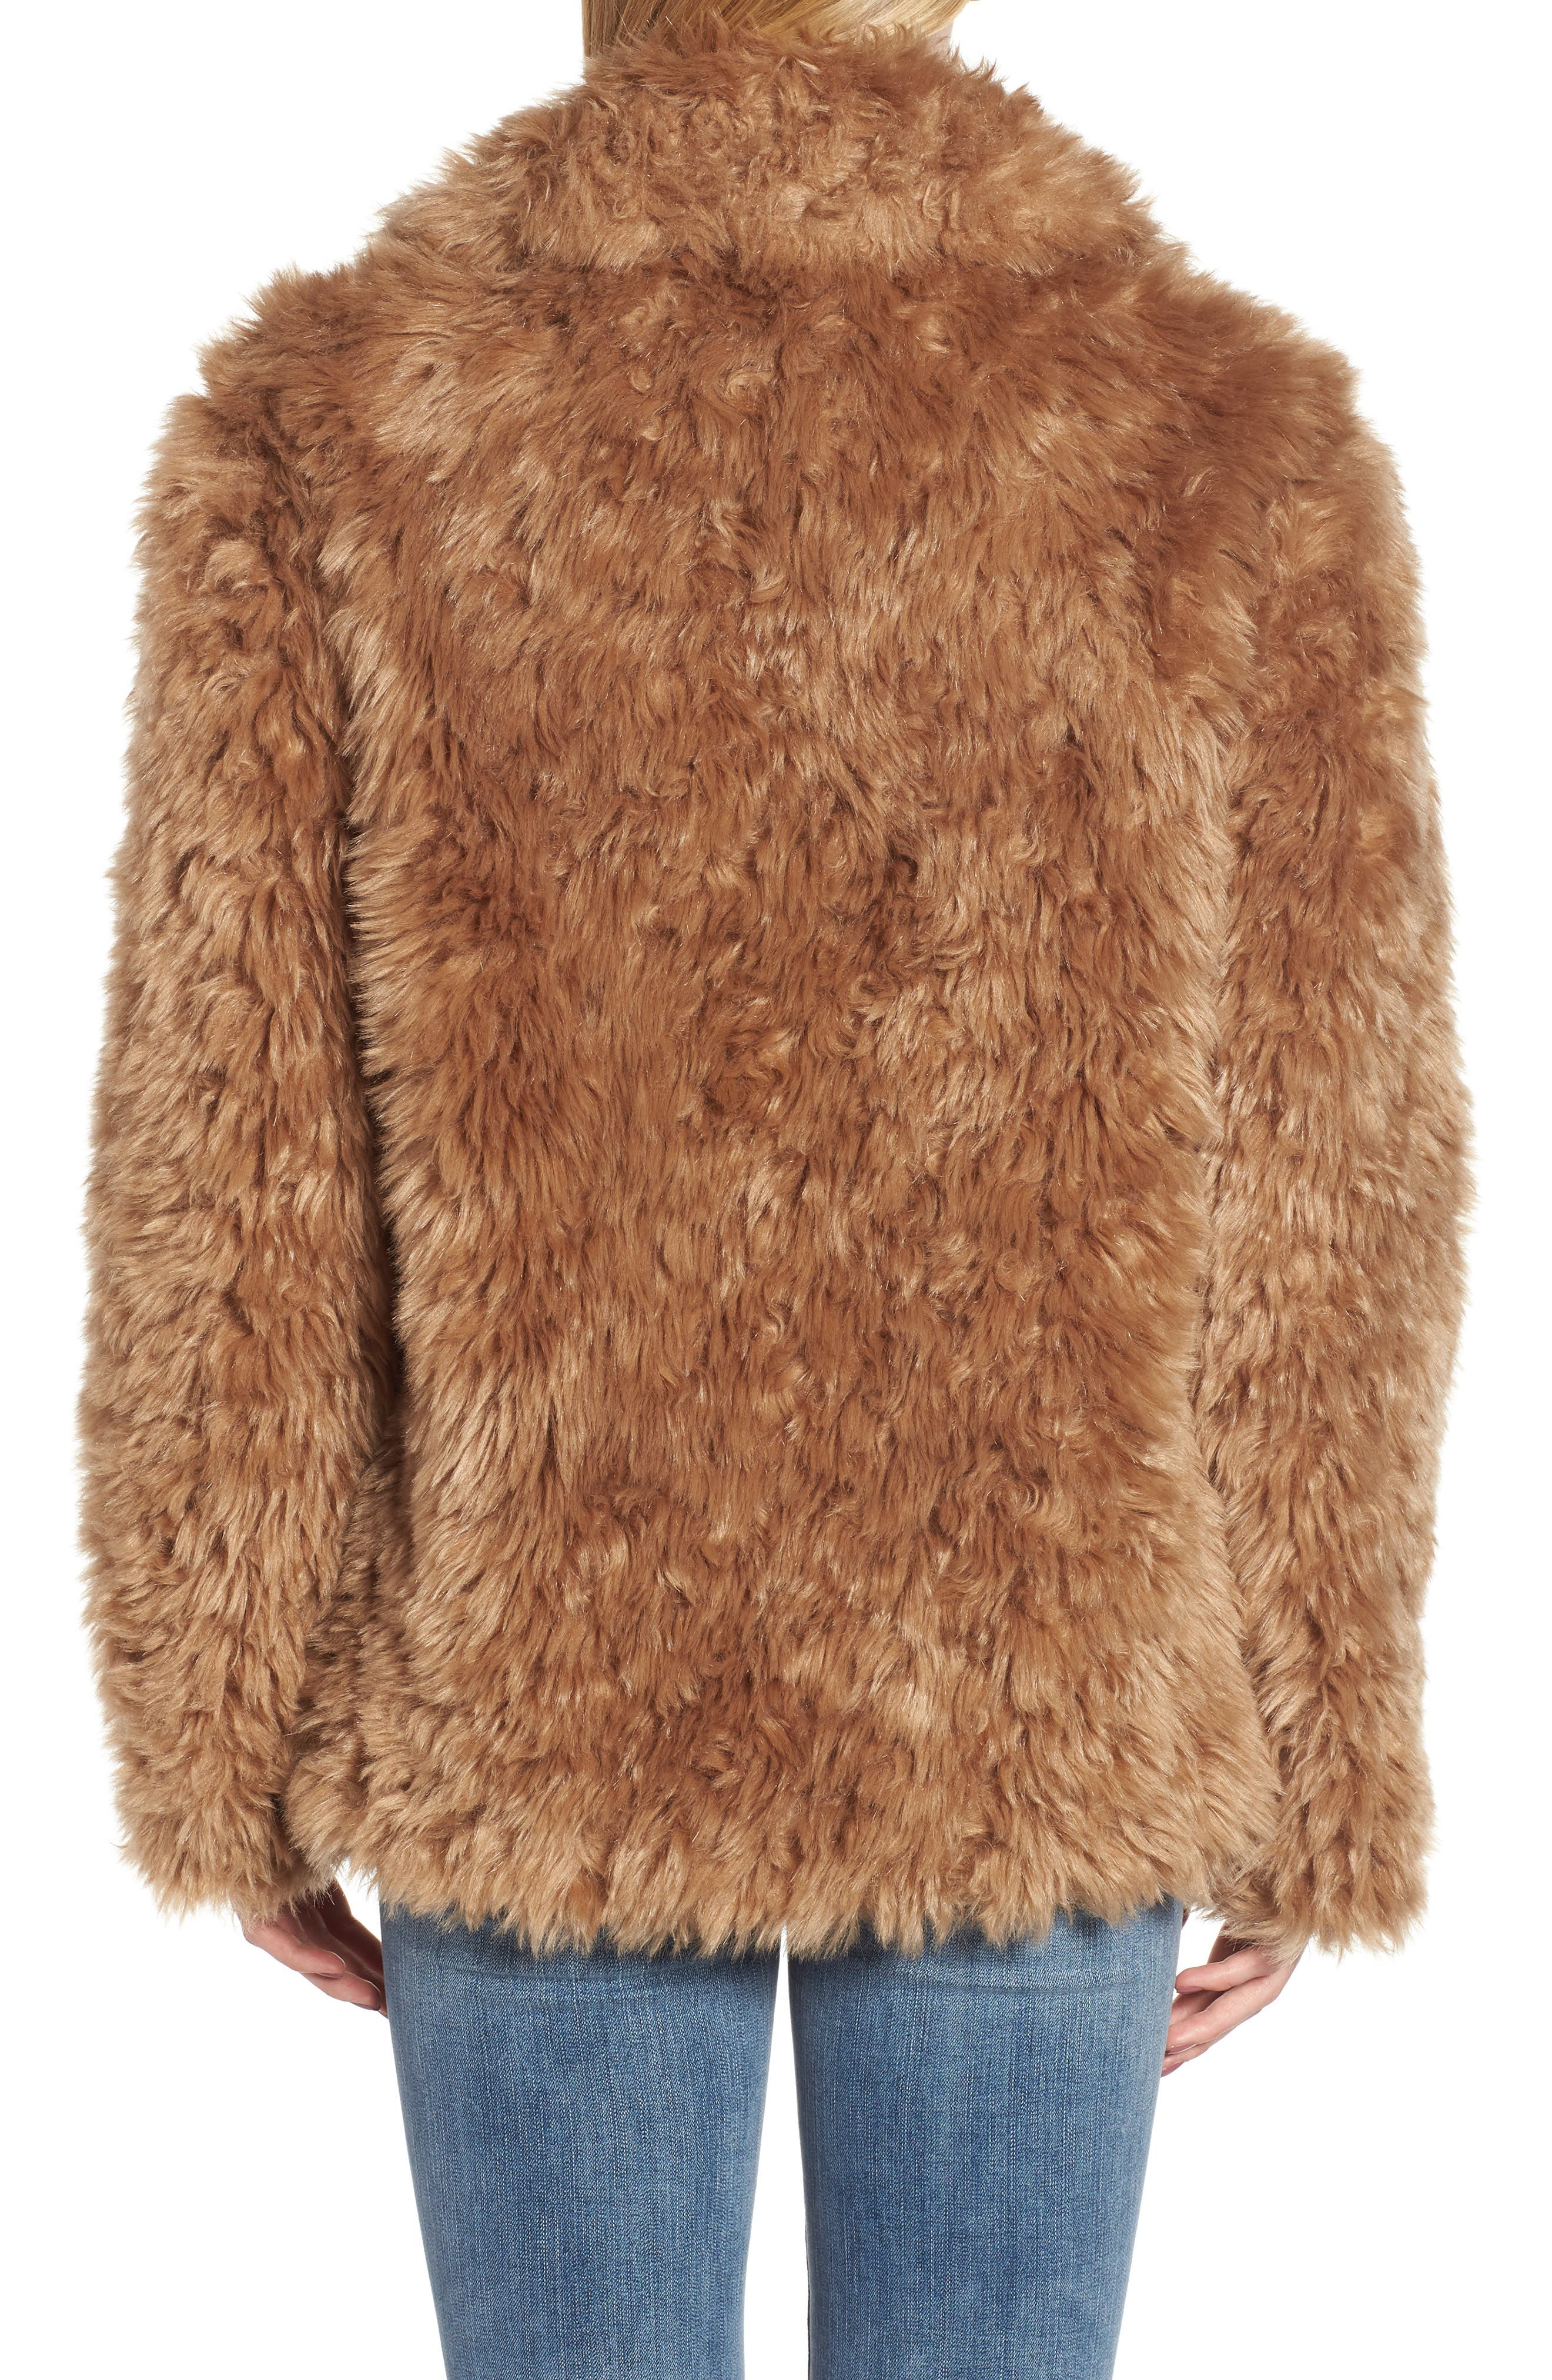 Faux Fur Teddy Coat,                             Alternate thumbnail 2, color,                             260